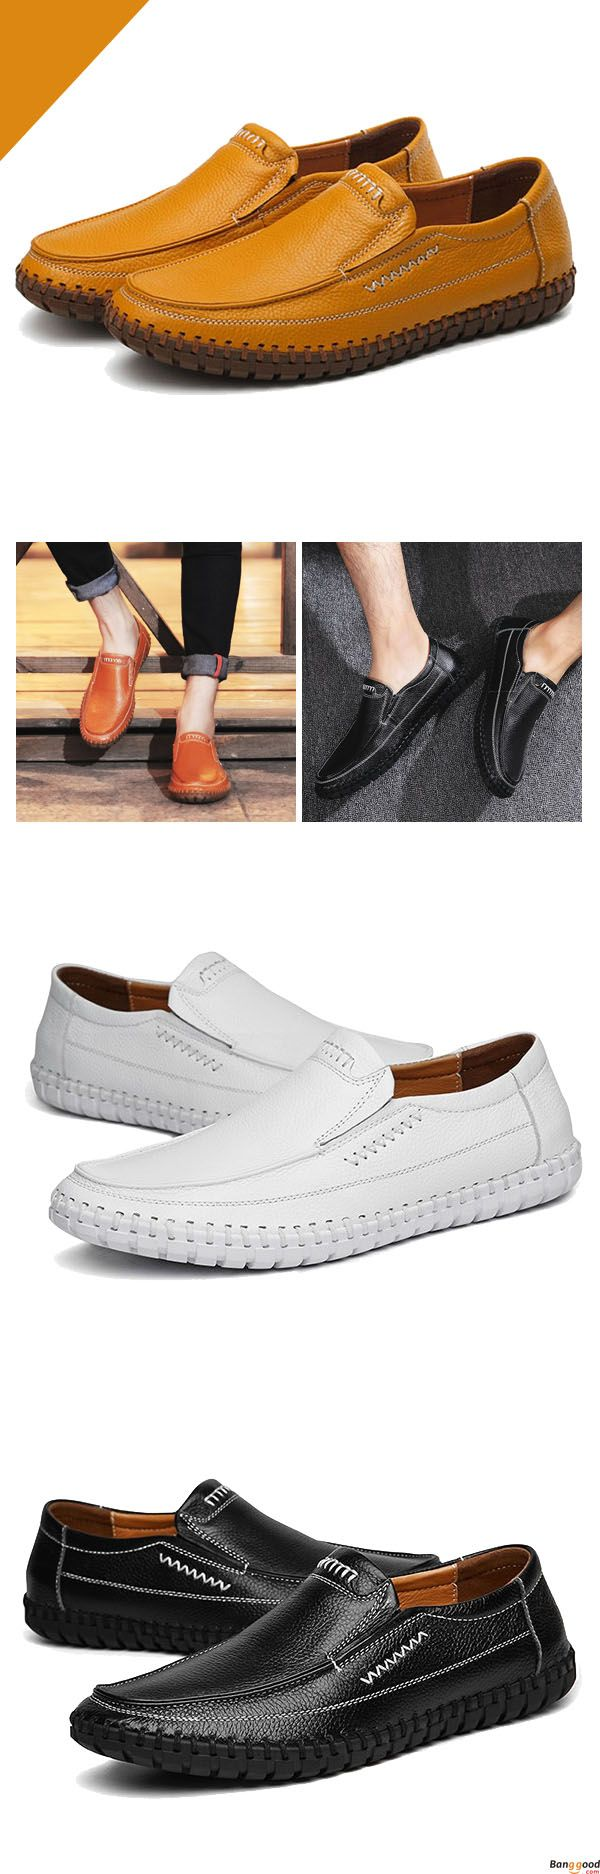 US$58.23+ Free Shipping. 5 colors available. Hand Stitching Soft Sole Oxford Shoes. Men loafers, casual comfortable shoes,  oxford shoes, boots, Fashion and chic, casual shoes, men's flats, oxford boots,leather short boots,loafers, casual oxford shoes,slip on  men's style, chic style, fashion style.  Shop at banggood with super affordable price. #men'sshoes#men'sstyle#chic#style#fashion#style#wintershoes#casual#shoes#casualshoes#boots#oxfordshoes#loafers#slipon#flats